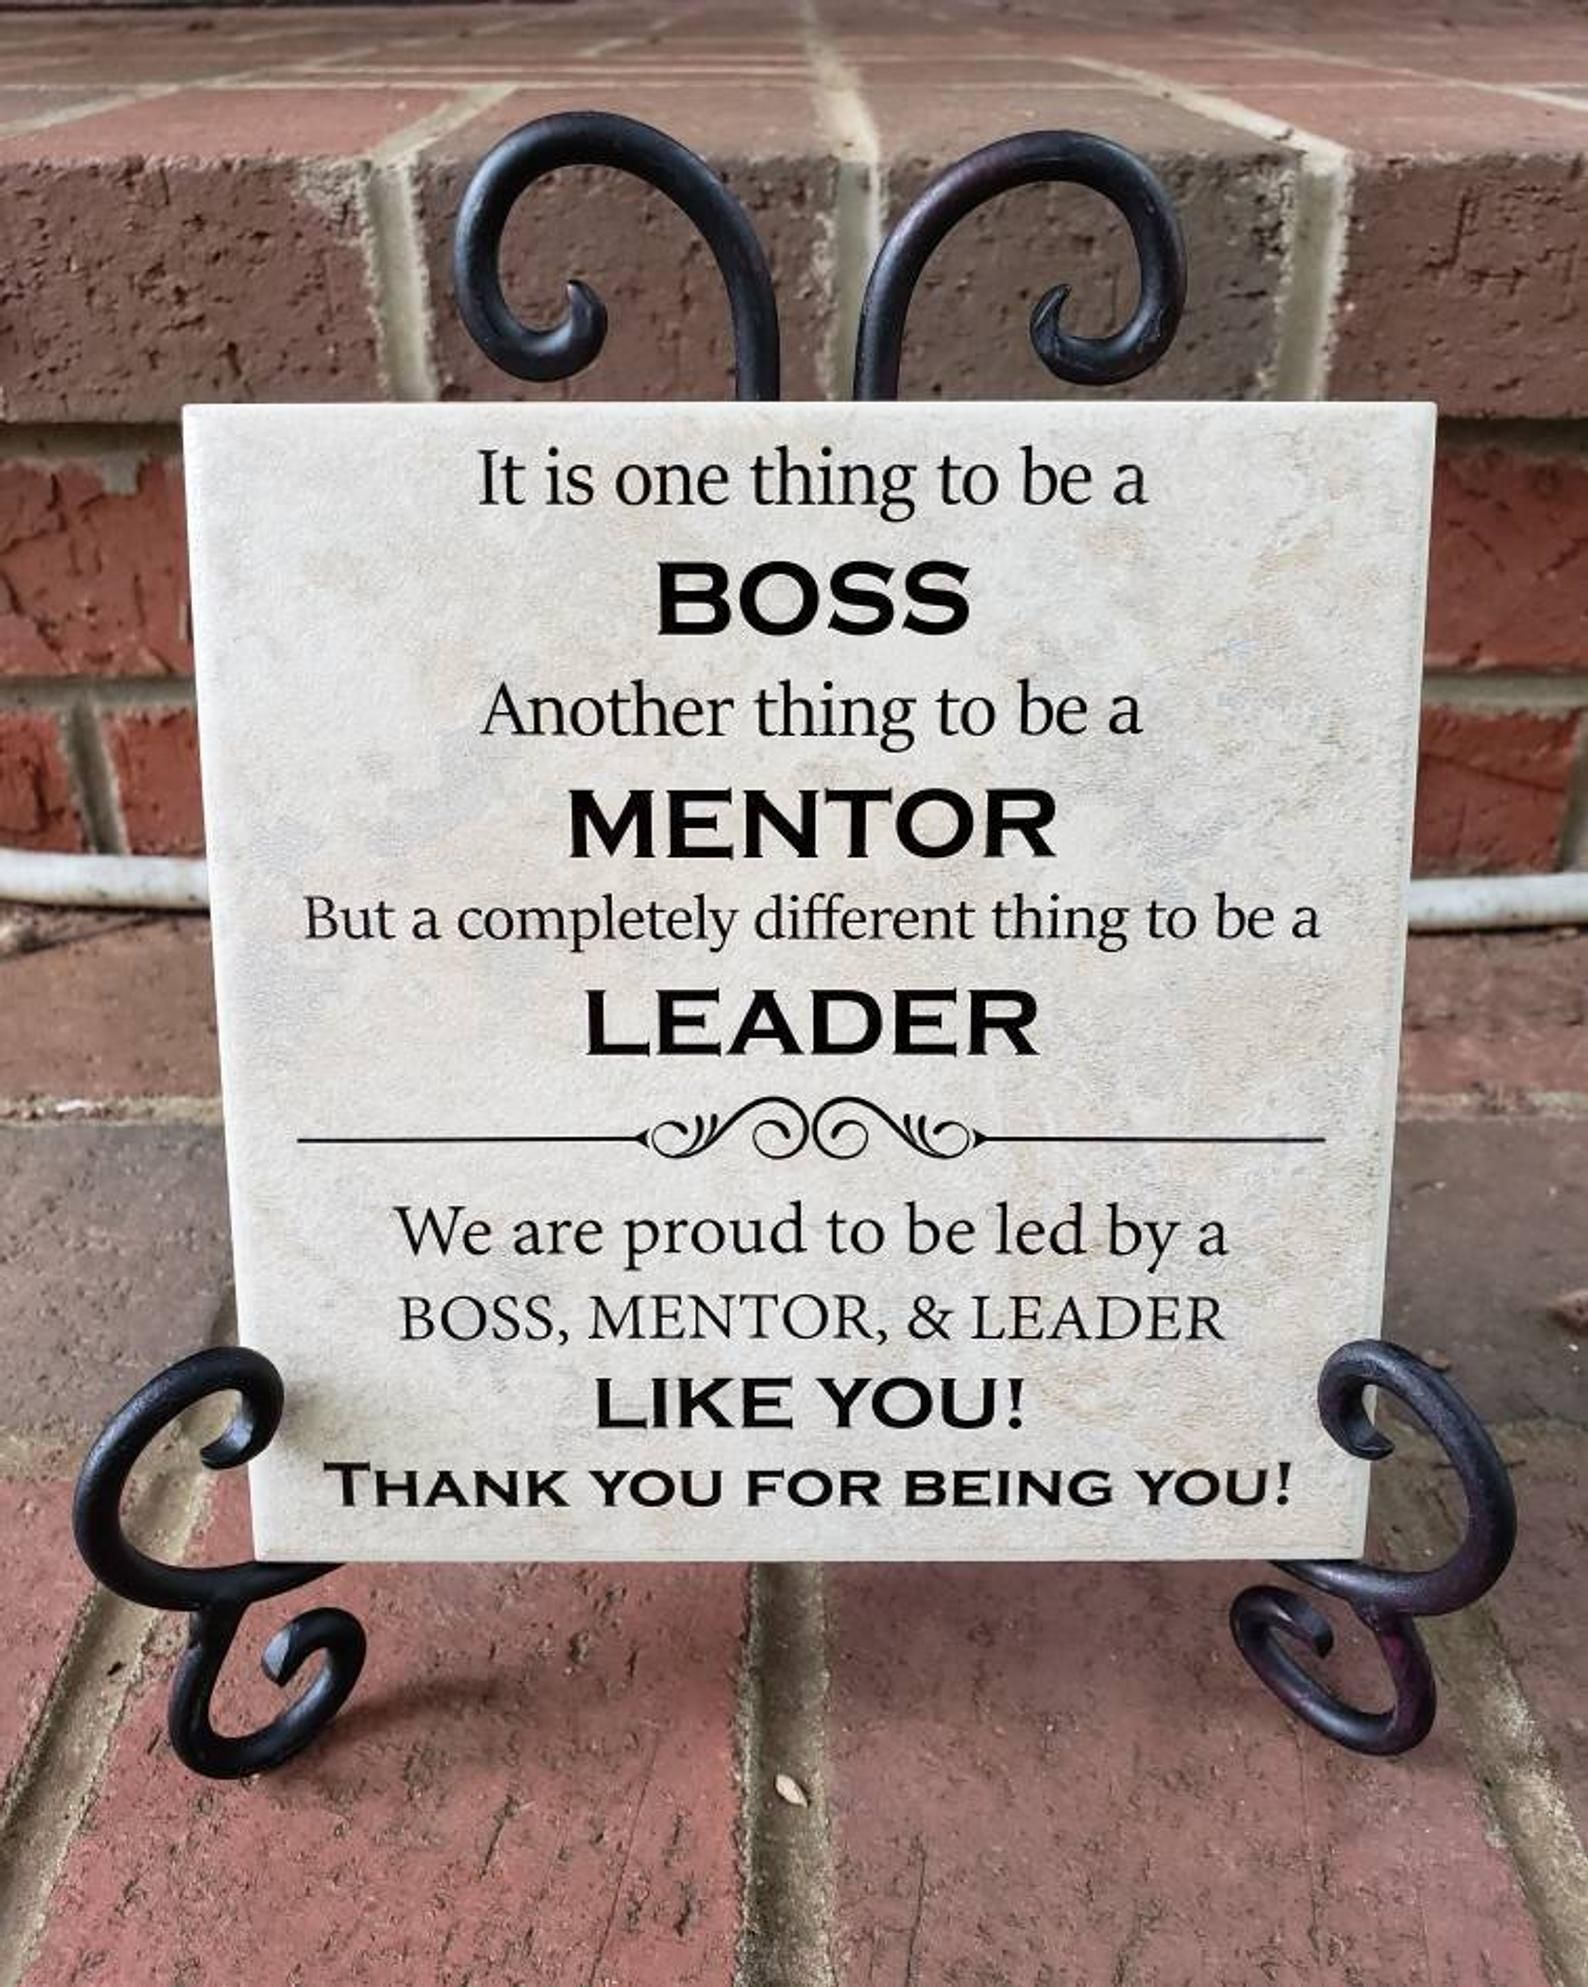 6x6 Thin Tile Plaque Bosses Day gift Boss Day gift Retirement Gift office Art Decor great mentor True Leader Present from group of coworkers